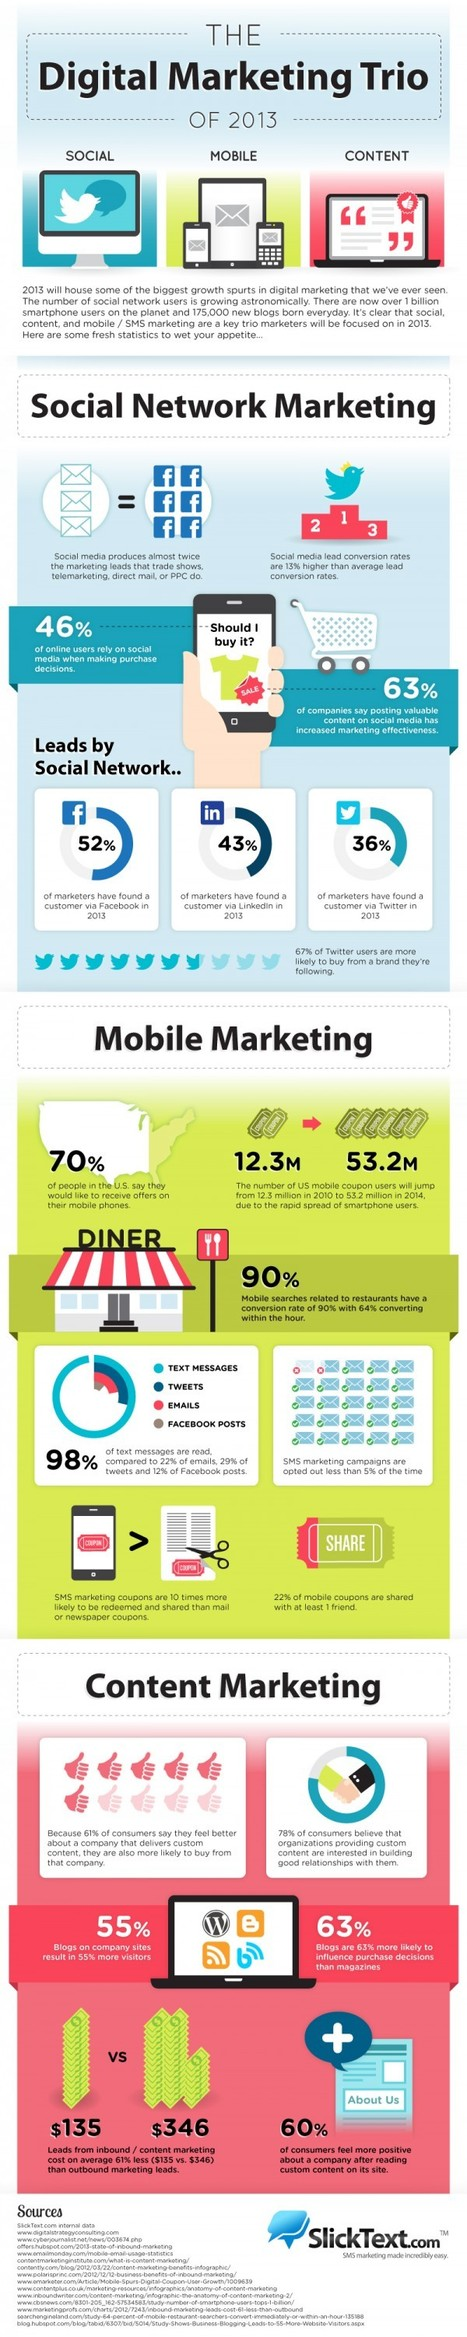 [INFOGRAPHIC] Le trio marketing digital de 2013: Social, Mobile, Content | Digital & Mobile Marketing Toolkit | Scoop.it